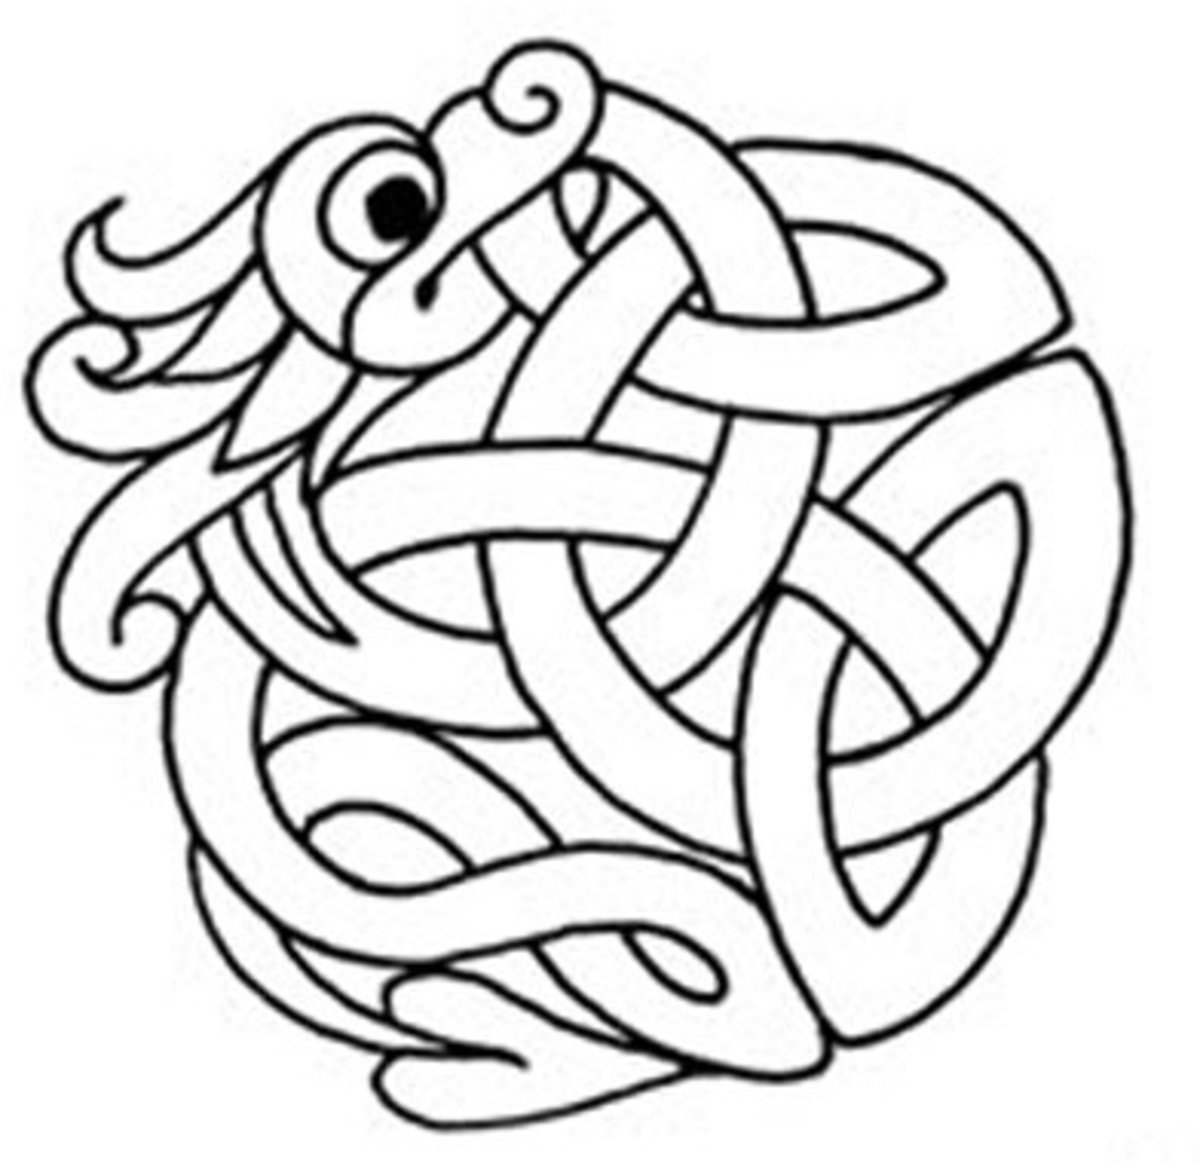 Celtic Design Art Coloring Pages For Kids Colouring